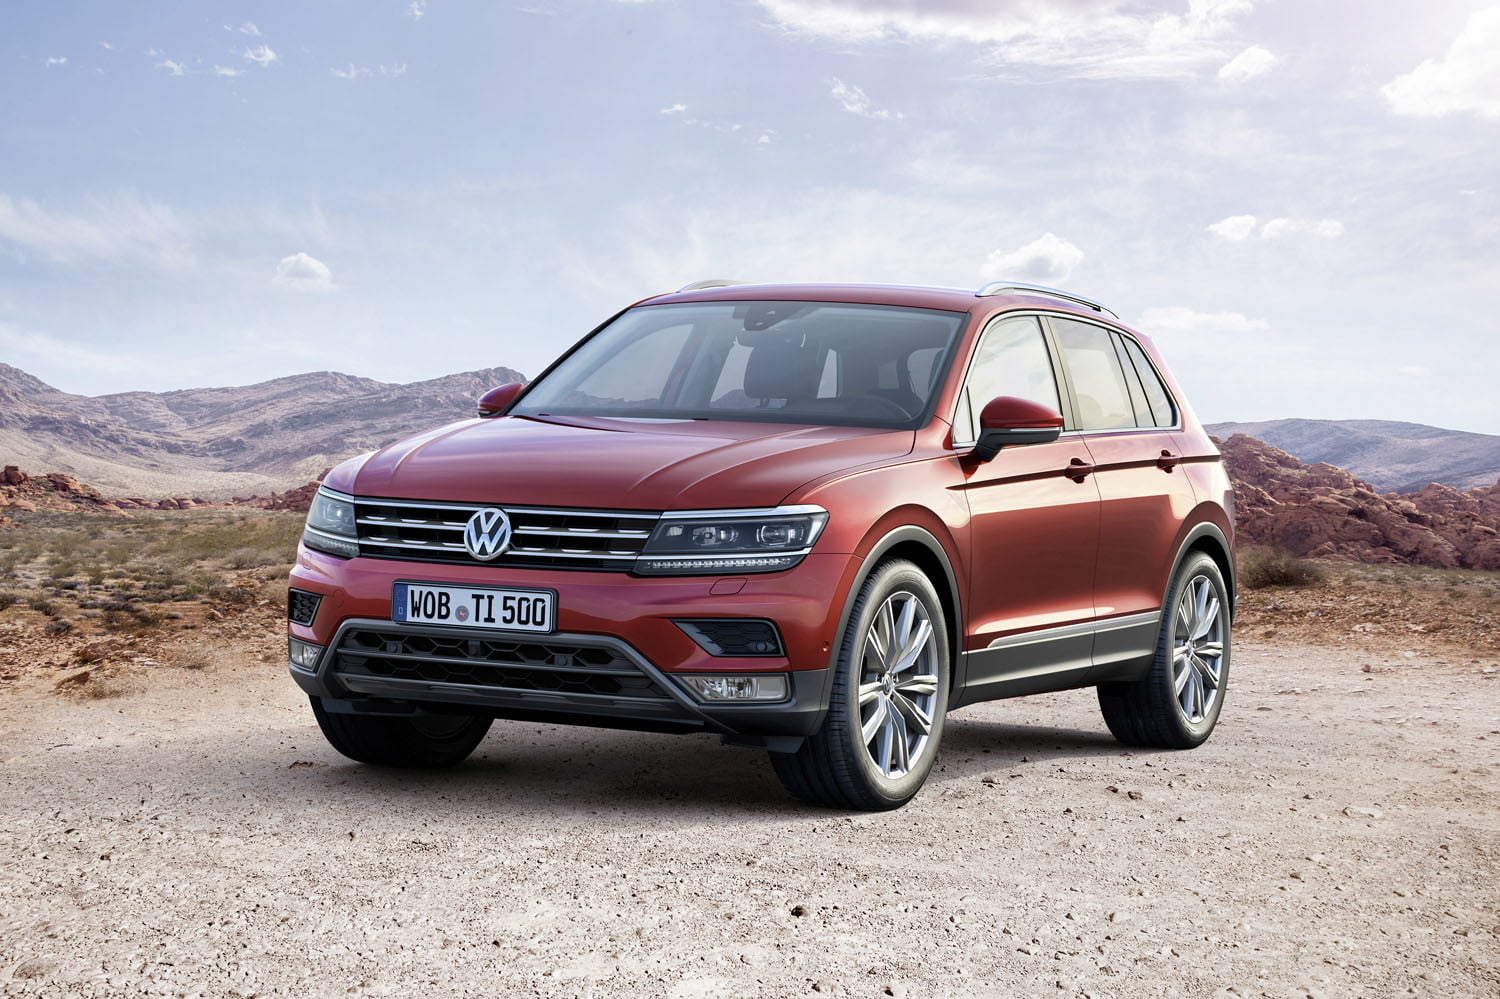 Volkswagen Kicks Off Its Crossover Offensive With The Entirely New 2017 Tiguan